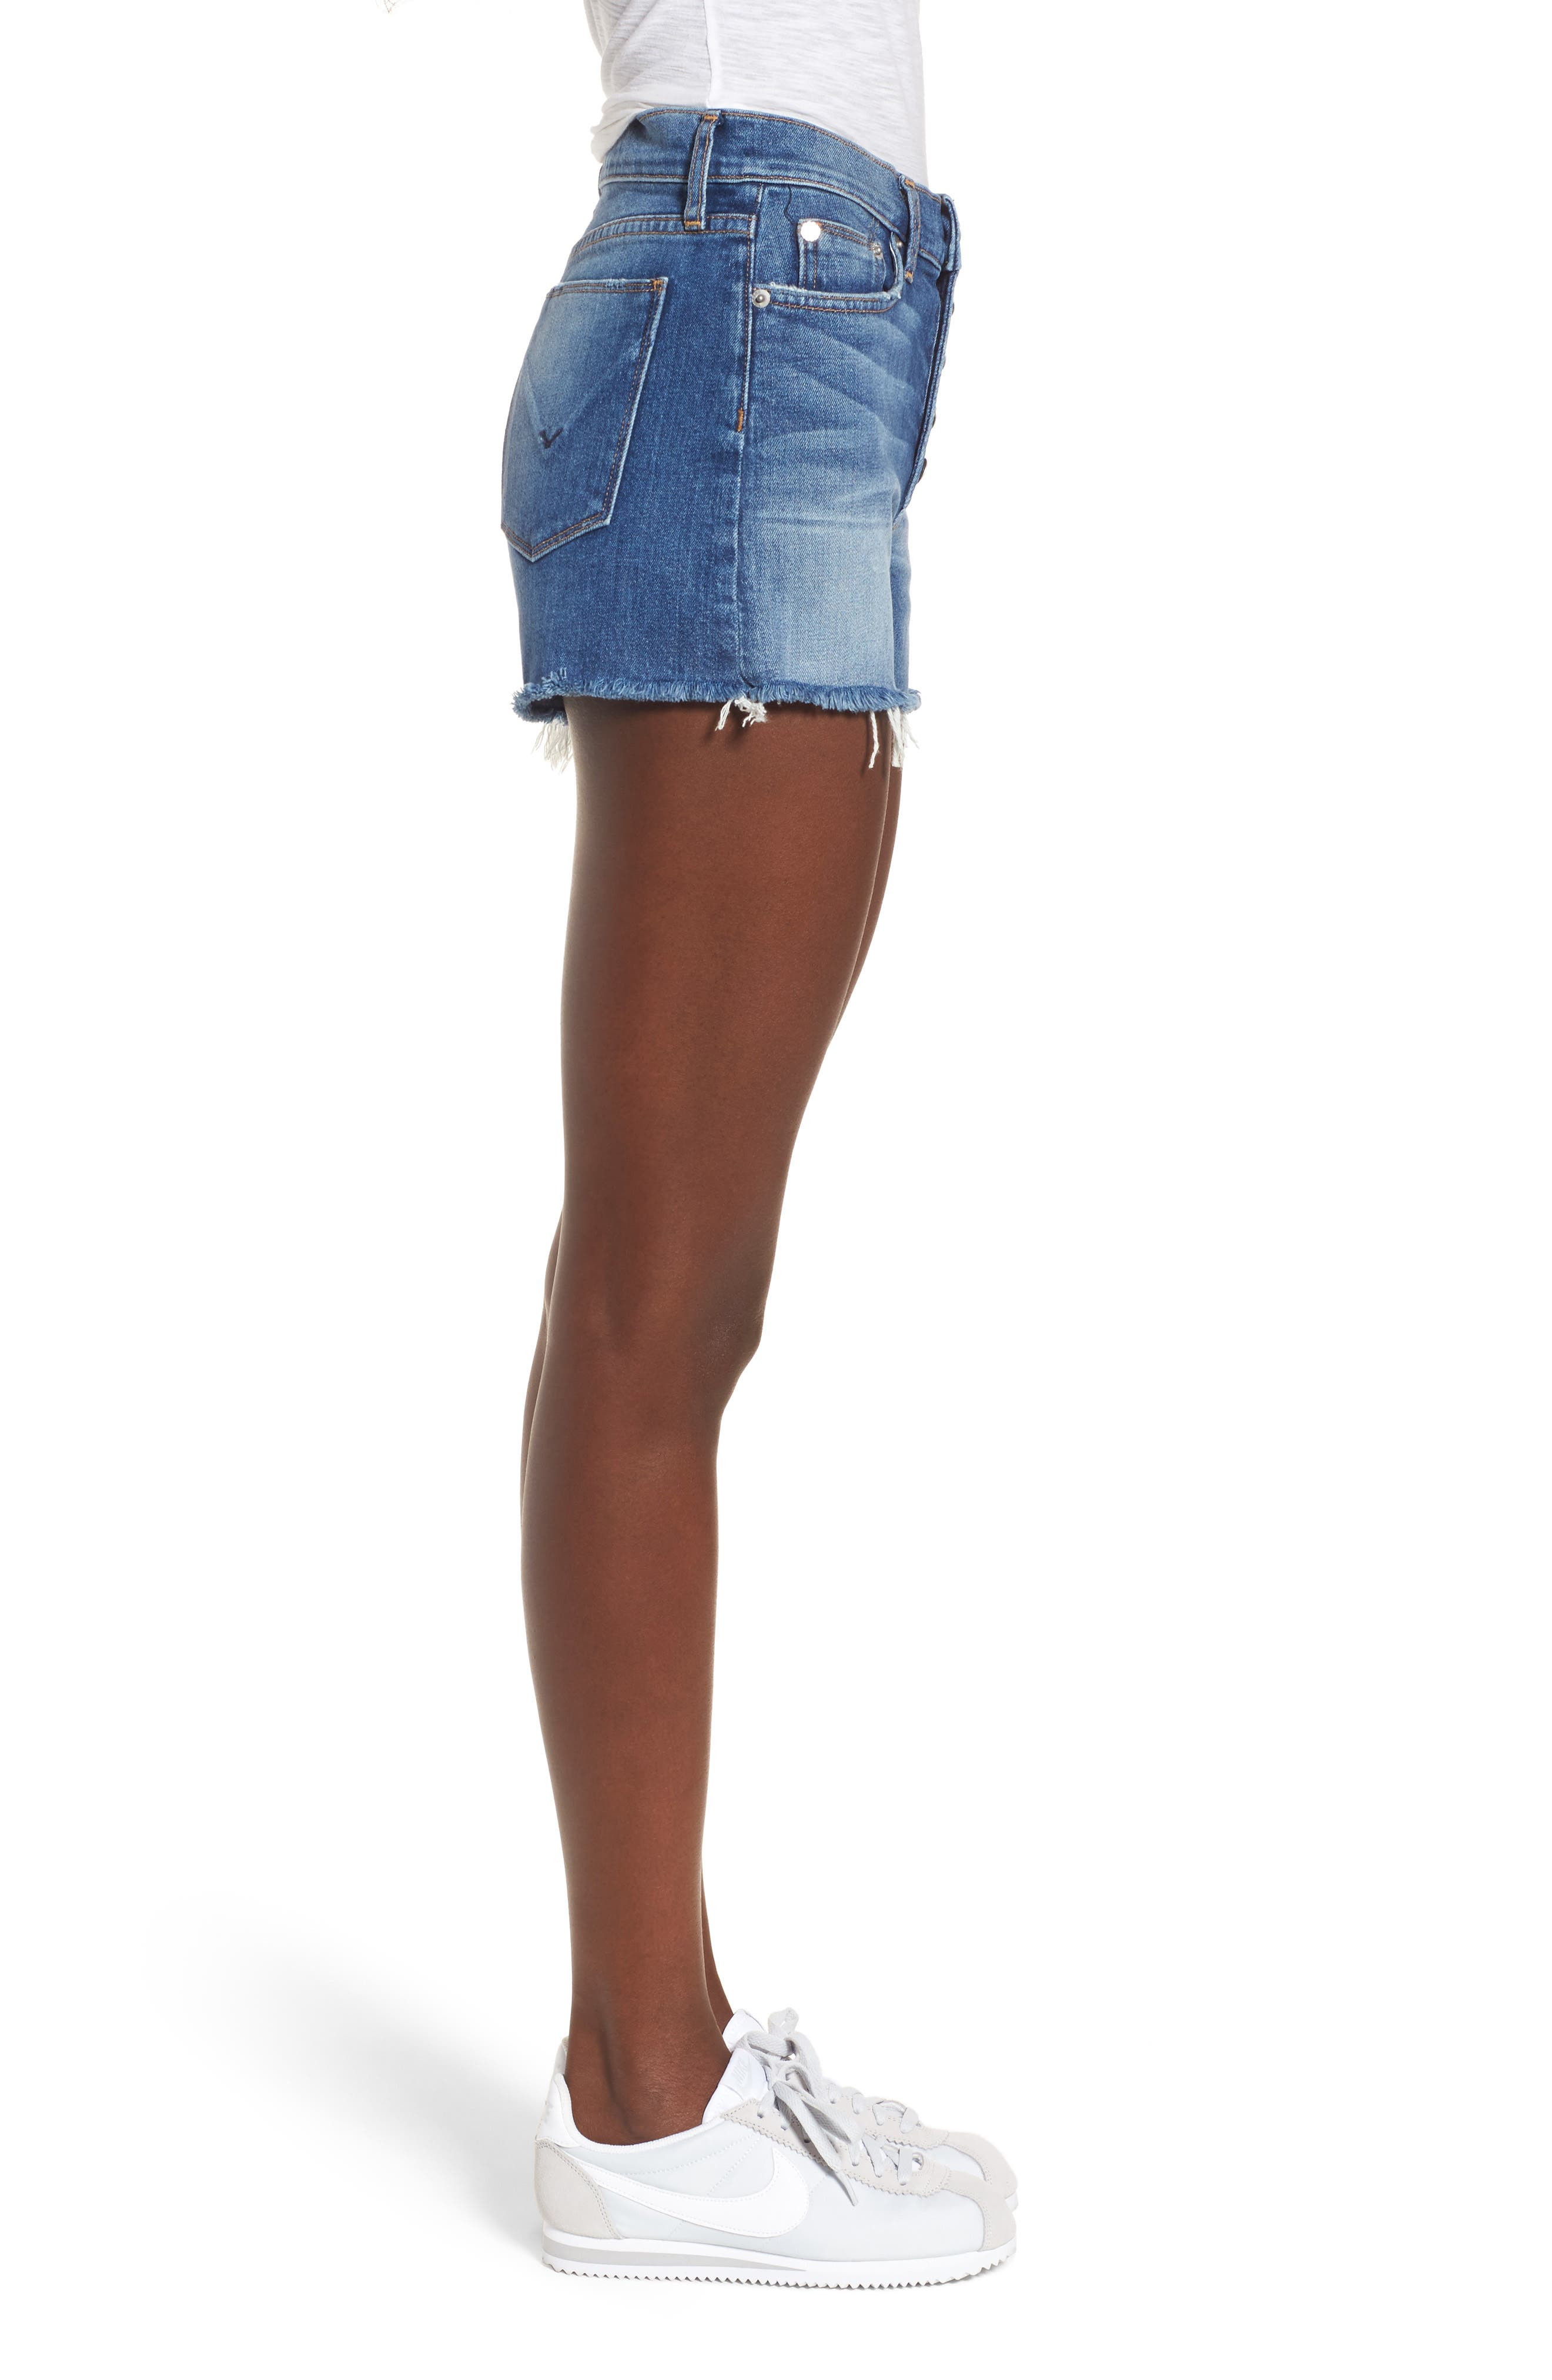 Zoeey High Waist Cutoff Denim Shorts,                             Alternate thumbnail 3, color,                             420